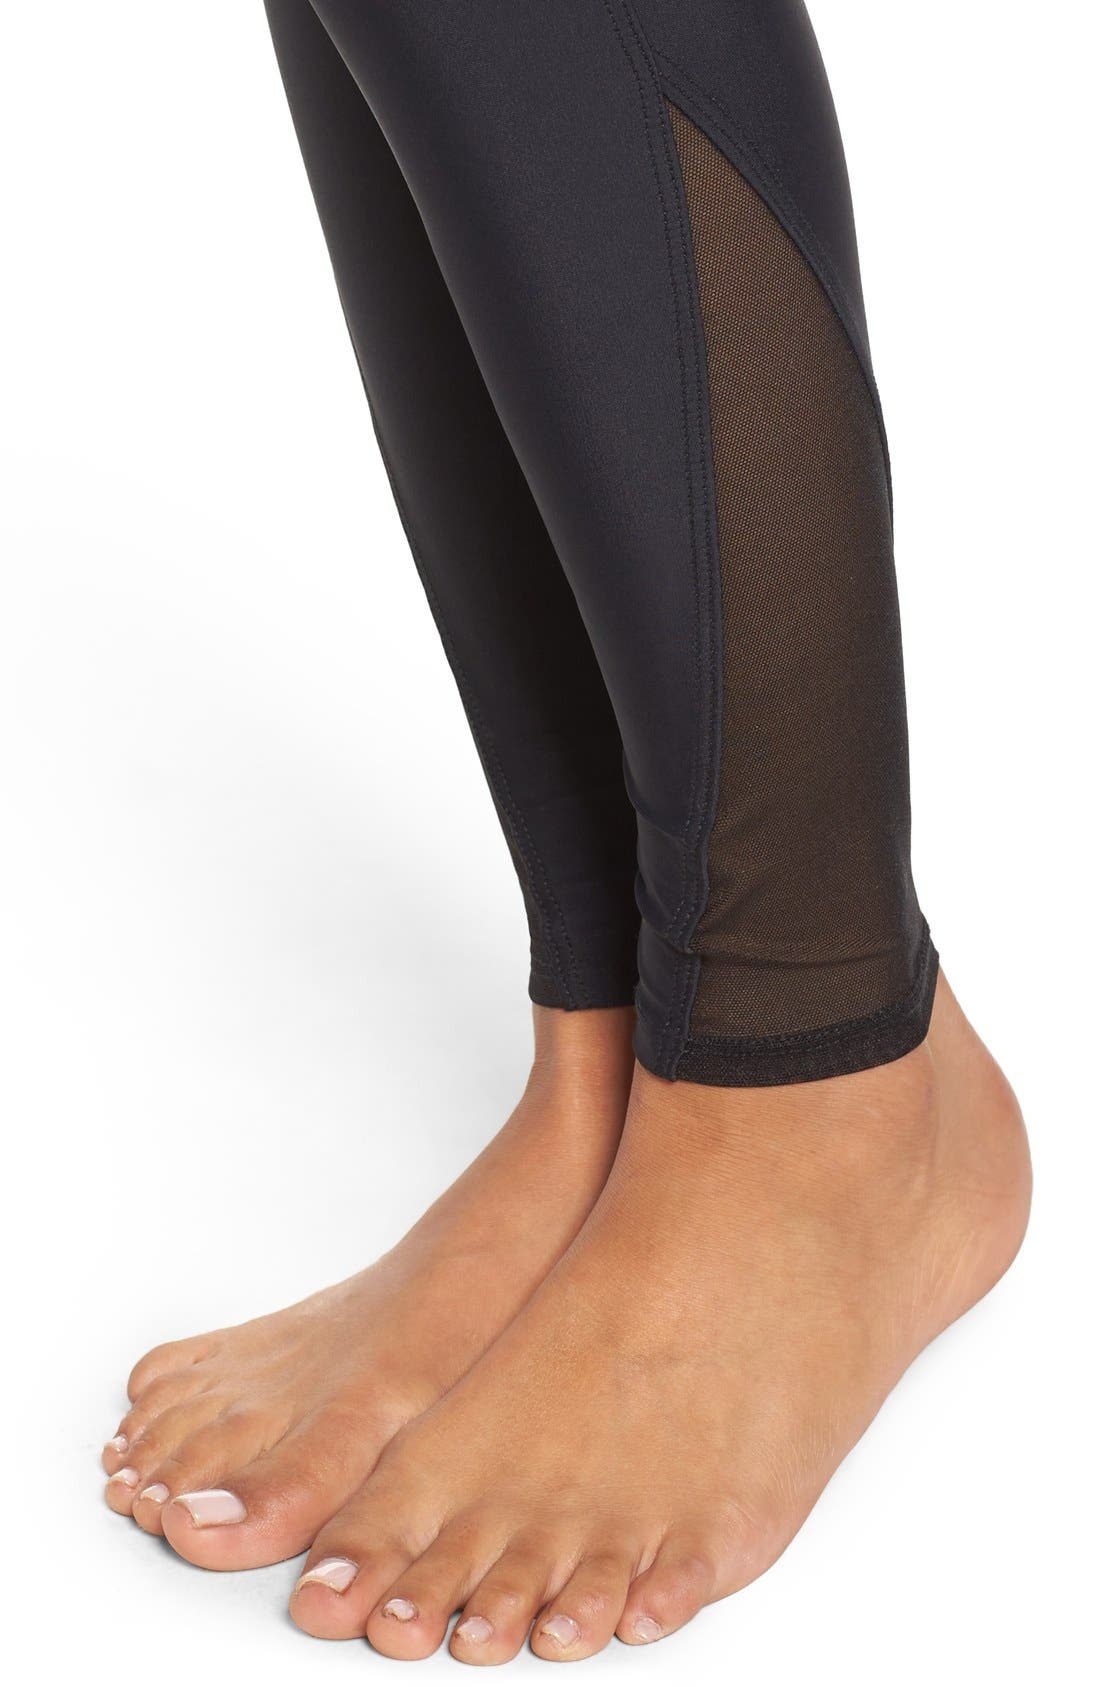 Shaper Leggings,                             Alternate thumbnail 10, color,                             001